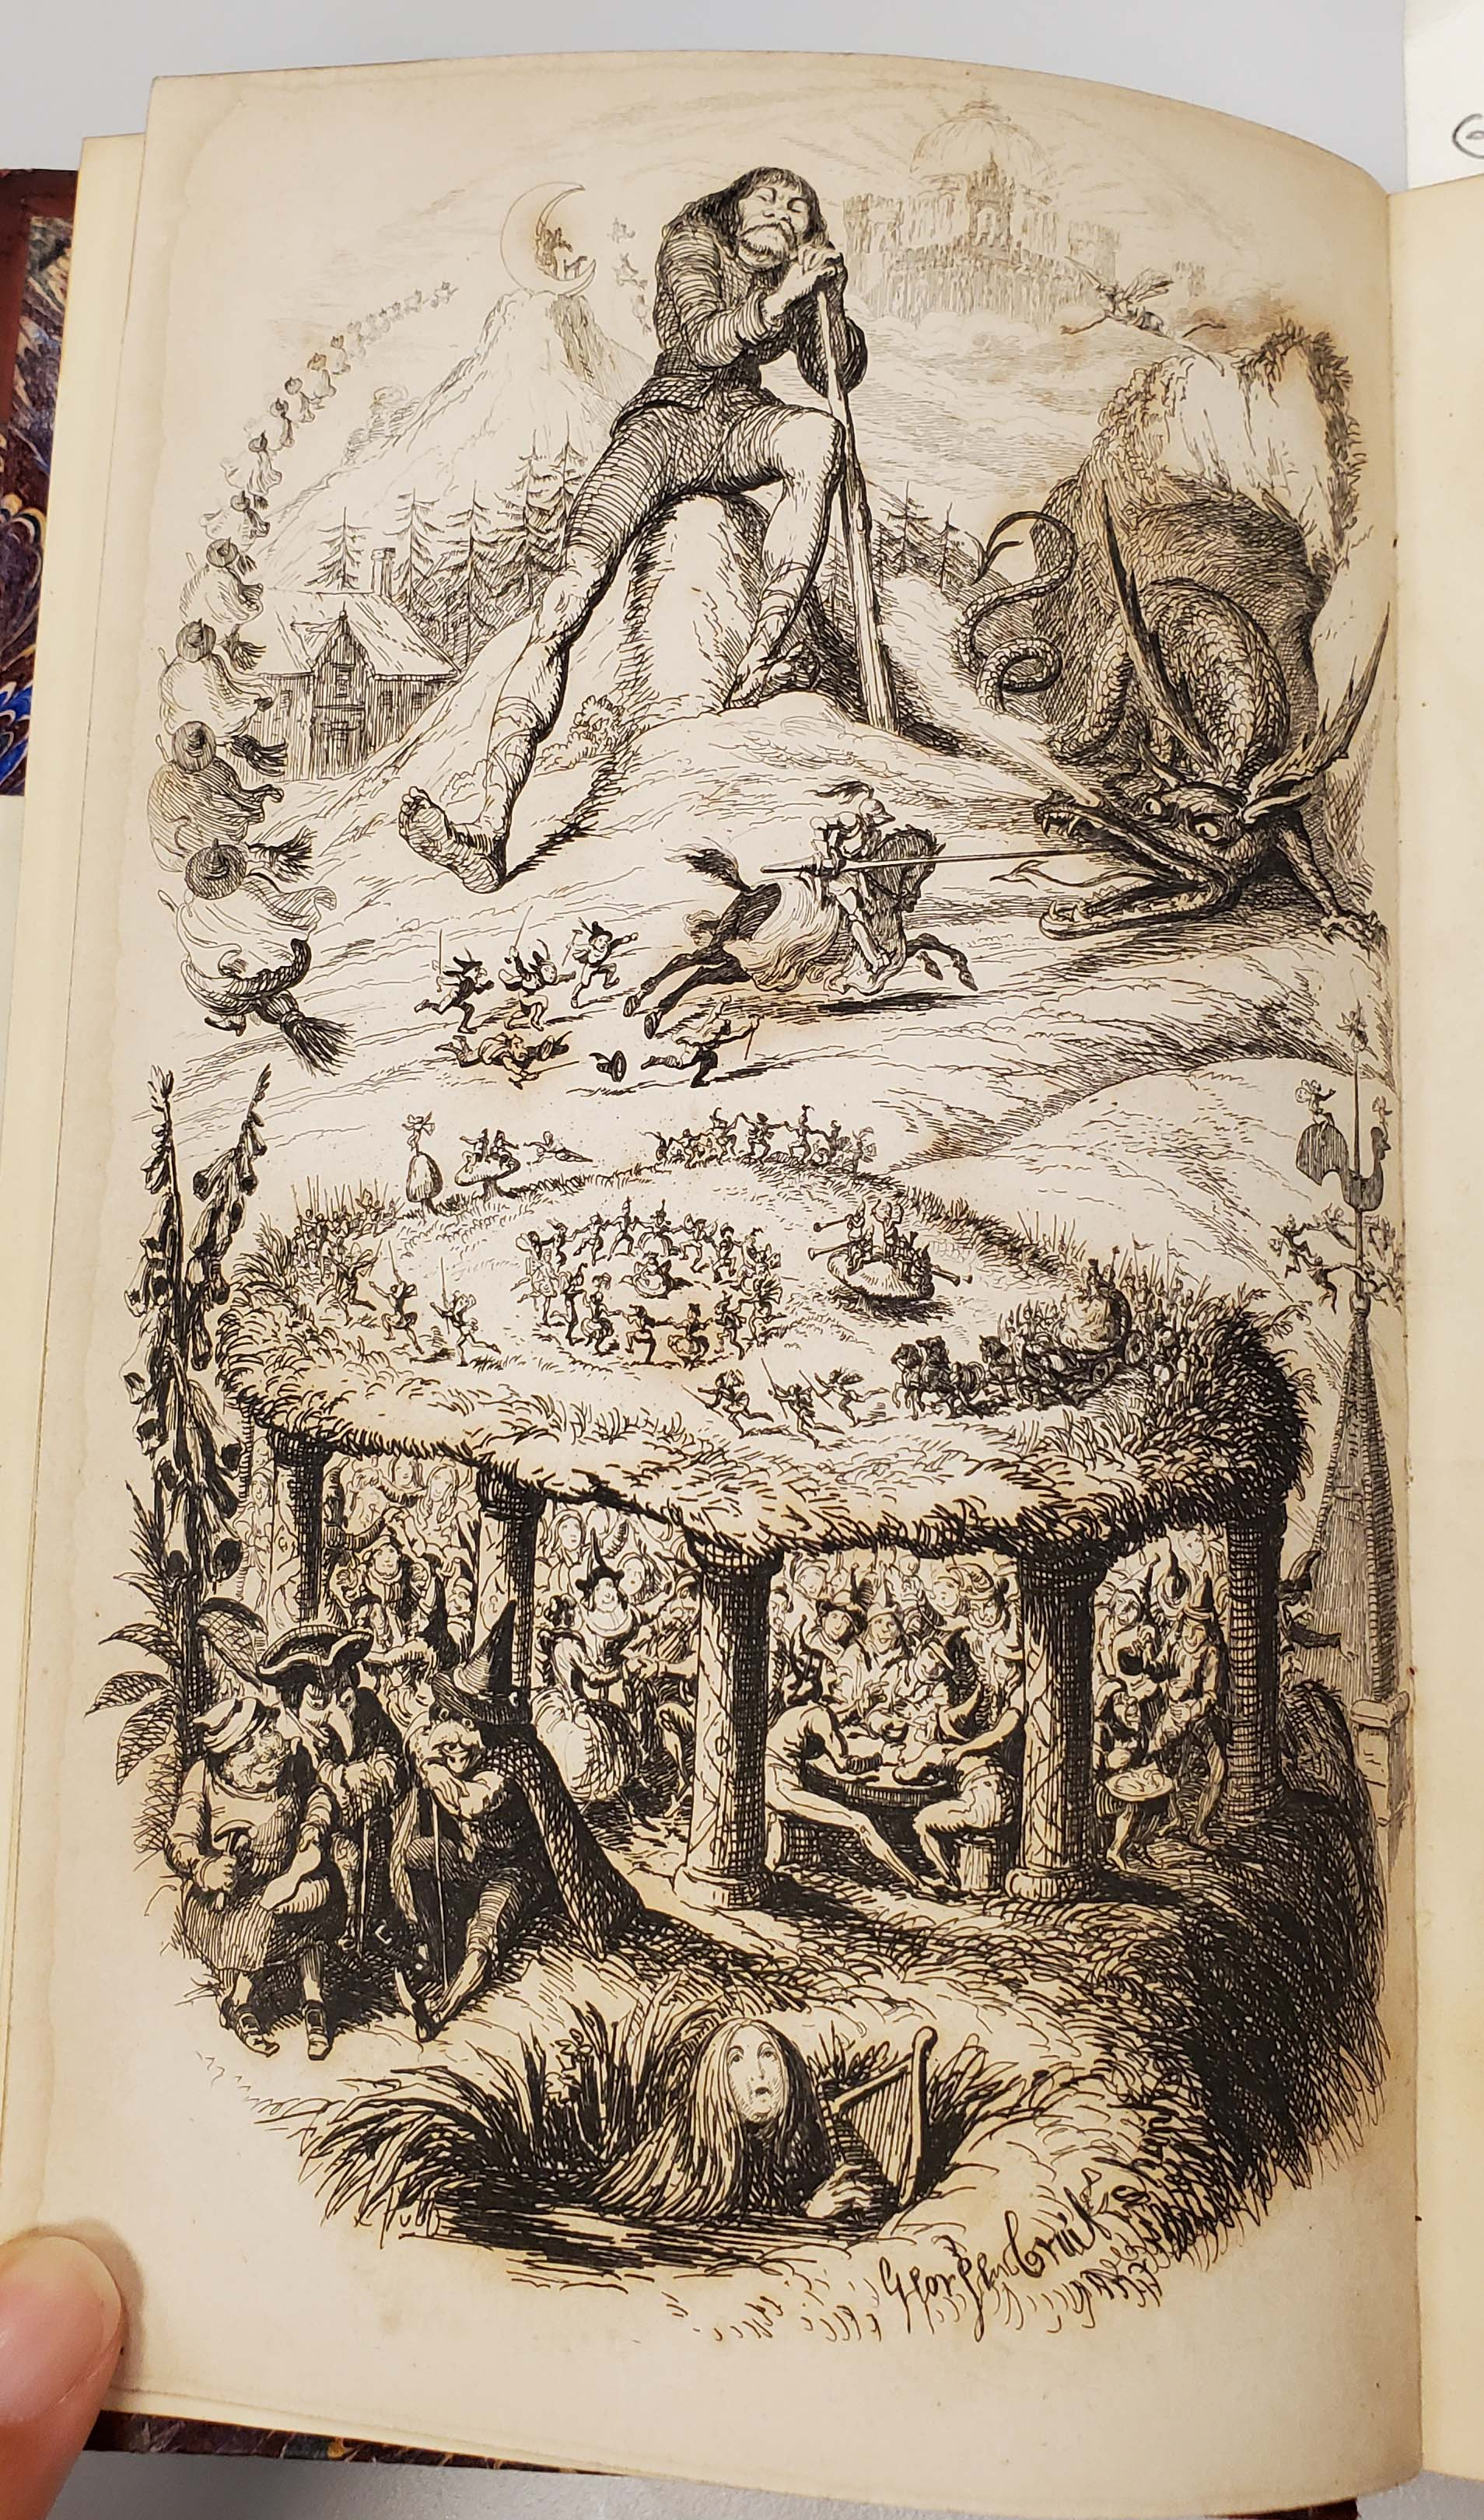 Etching by George Cruikshank showing a man with fairies underfoot.